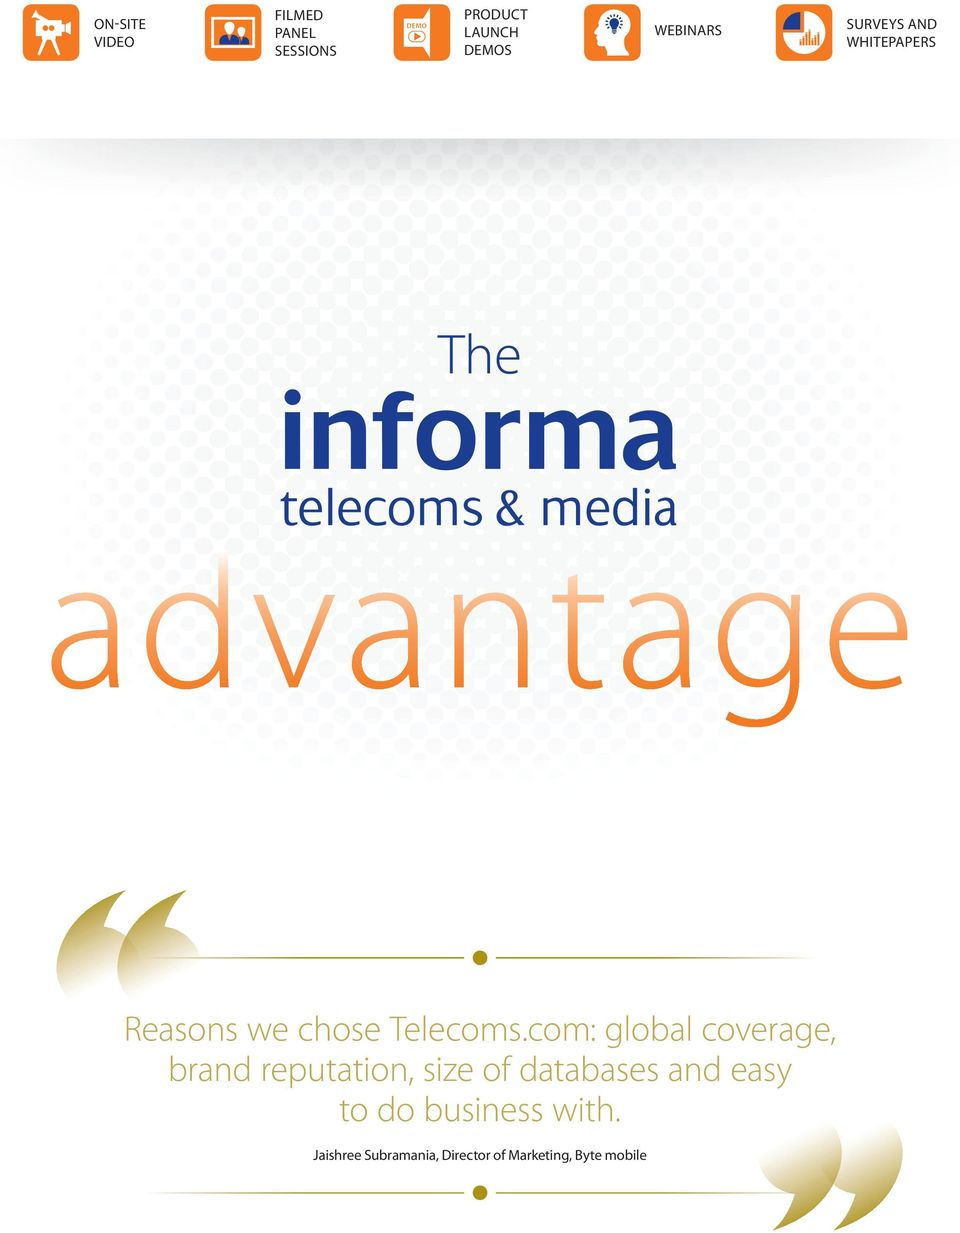 com: global coverage, brand reputation, size of databases and